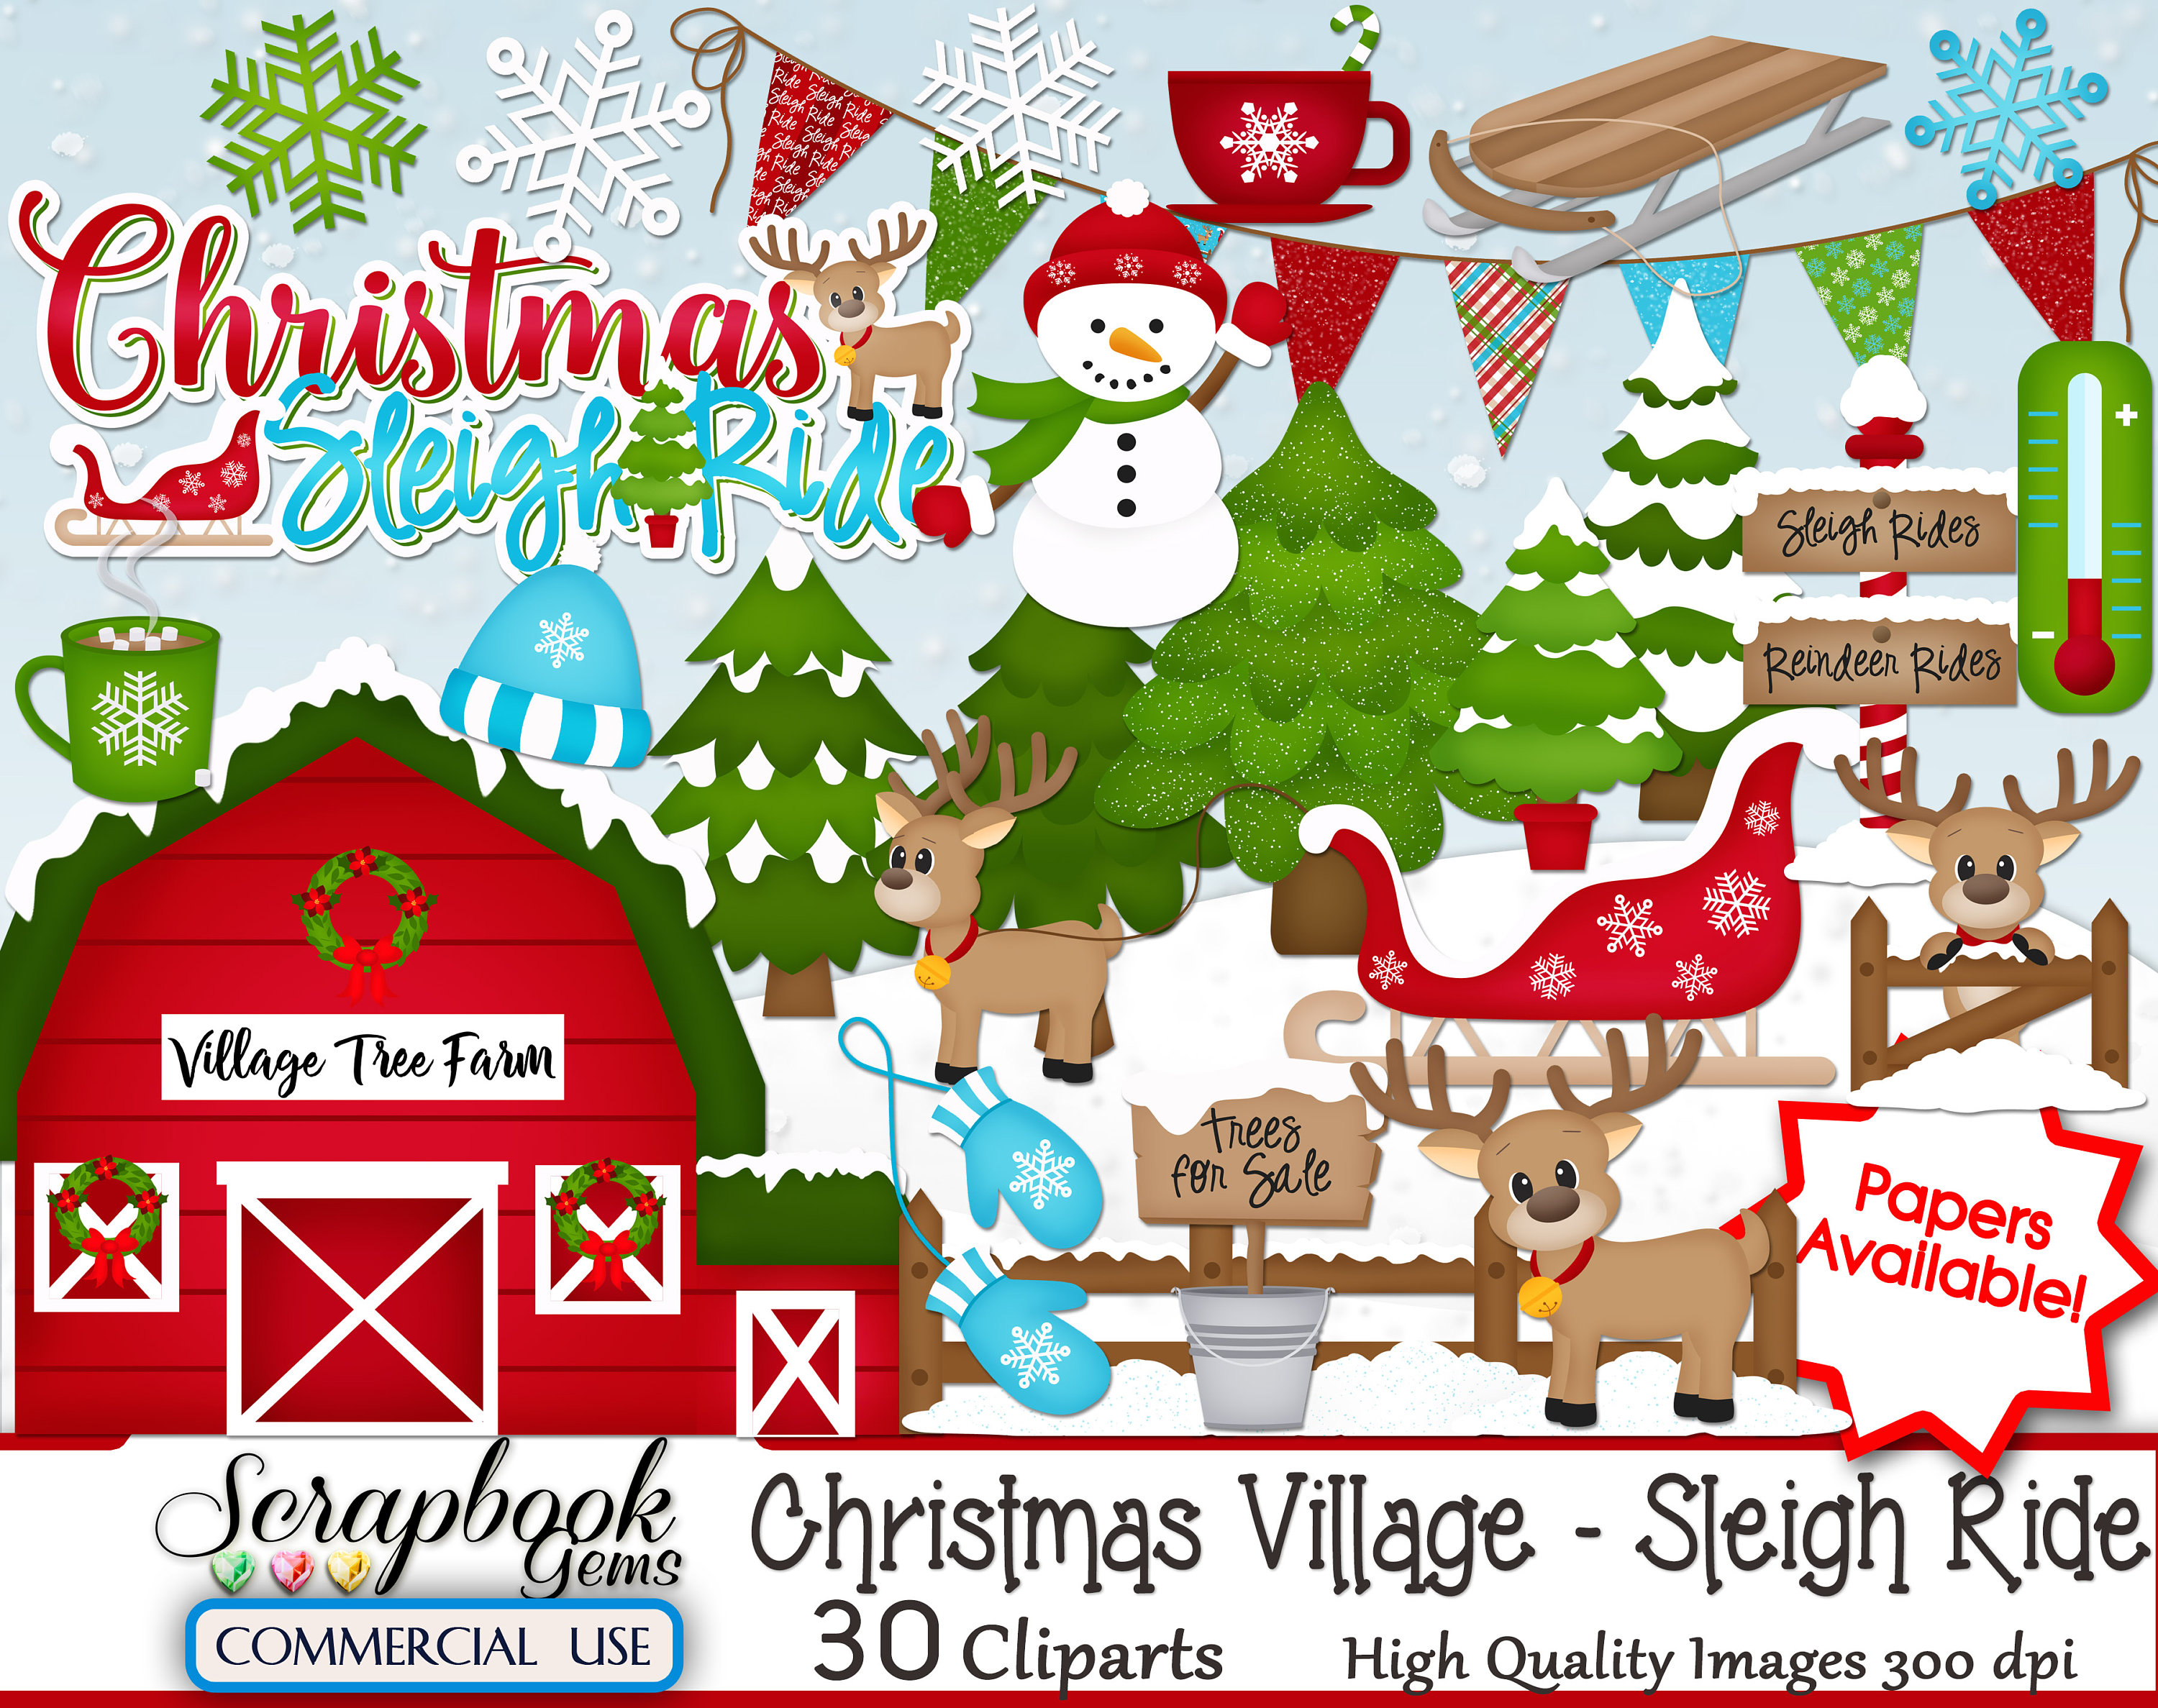 CHRISTMAS SLEIGH RIDE Clipart, 30 png Clipart files, Instant Download,  winter, snowman, village, reindeer, pine tree, snowman, mittens, snow.